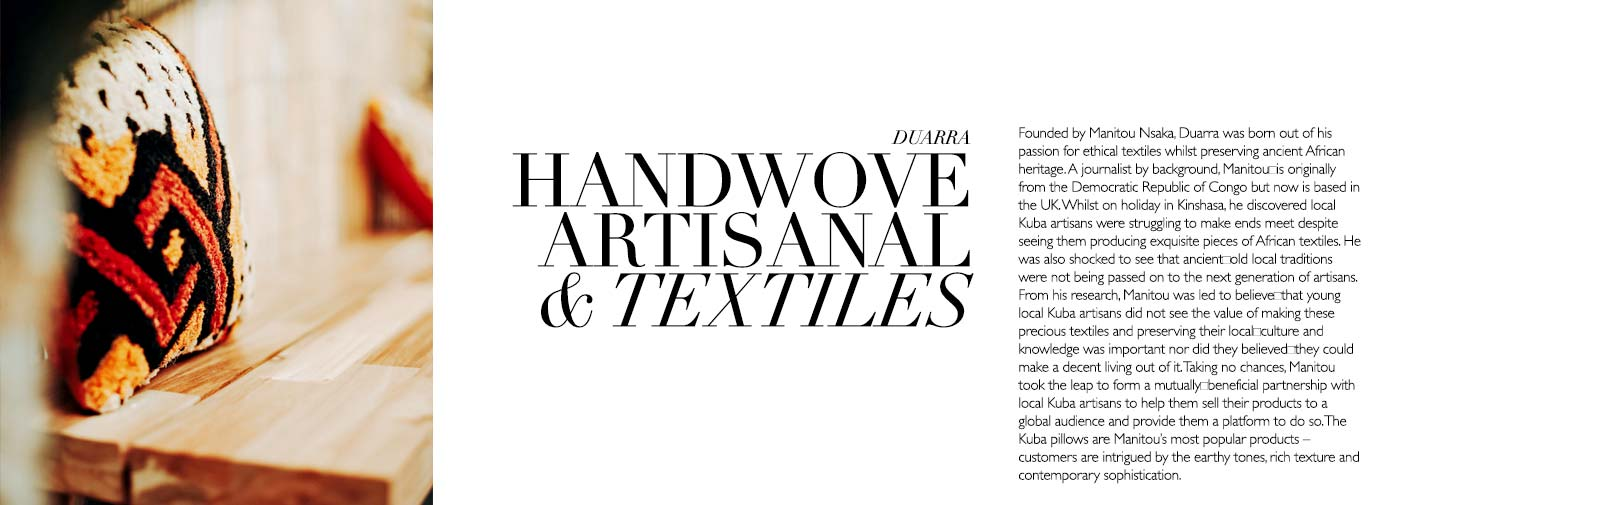 HANDWOVE ARTISANAL TEXTILES - DUARRA - Founded by Manitou Nsaka, Duarra was born out of his passion for ethical textiles whilst preserving ancient African heritage. A journalist by background, Manitou is originally from the Democratic Republic of Congo but now is based in the UK. Whilst on holiday in Kinshasa, he discovered local Kuba artisans were struggling to make ends meet despite seeing them producing exquisite pieces of African textiles. He was also shocked to see that ancientold local traditions were not being passed on to the next generation of artisans. From his research, Manitou was led to believethat young local Kuba artisans did not see the value of making these precious textiles and preserving their localculture and knowledge was important nor did they believedthey could make a decent living out of it. Taking no chances, Manitou took the leap to form a mutuallybeneficial partnership with local Kuba artisans to help them sell their products to a global audience and provide them a platform to do so. The Kuba pillows are Manitou's most popular products – customers are intrigued by the earthy tones, rich texture and contemporary sophistication.